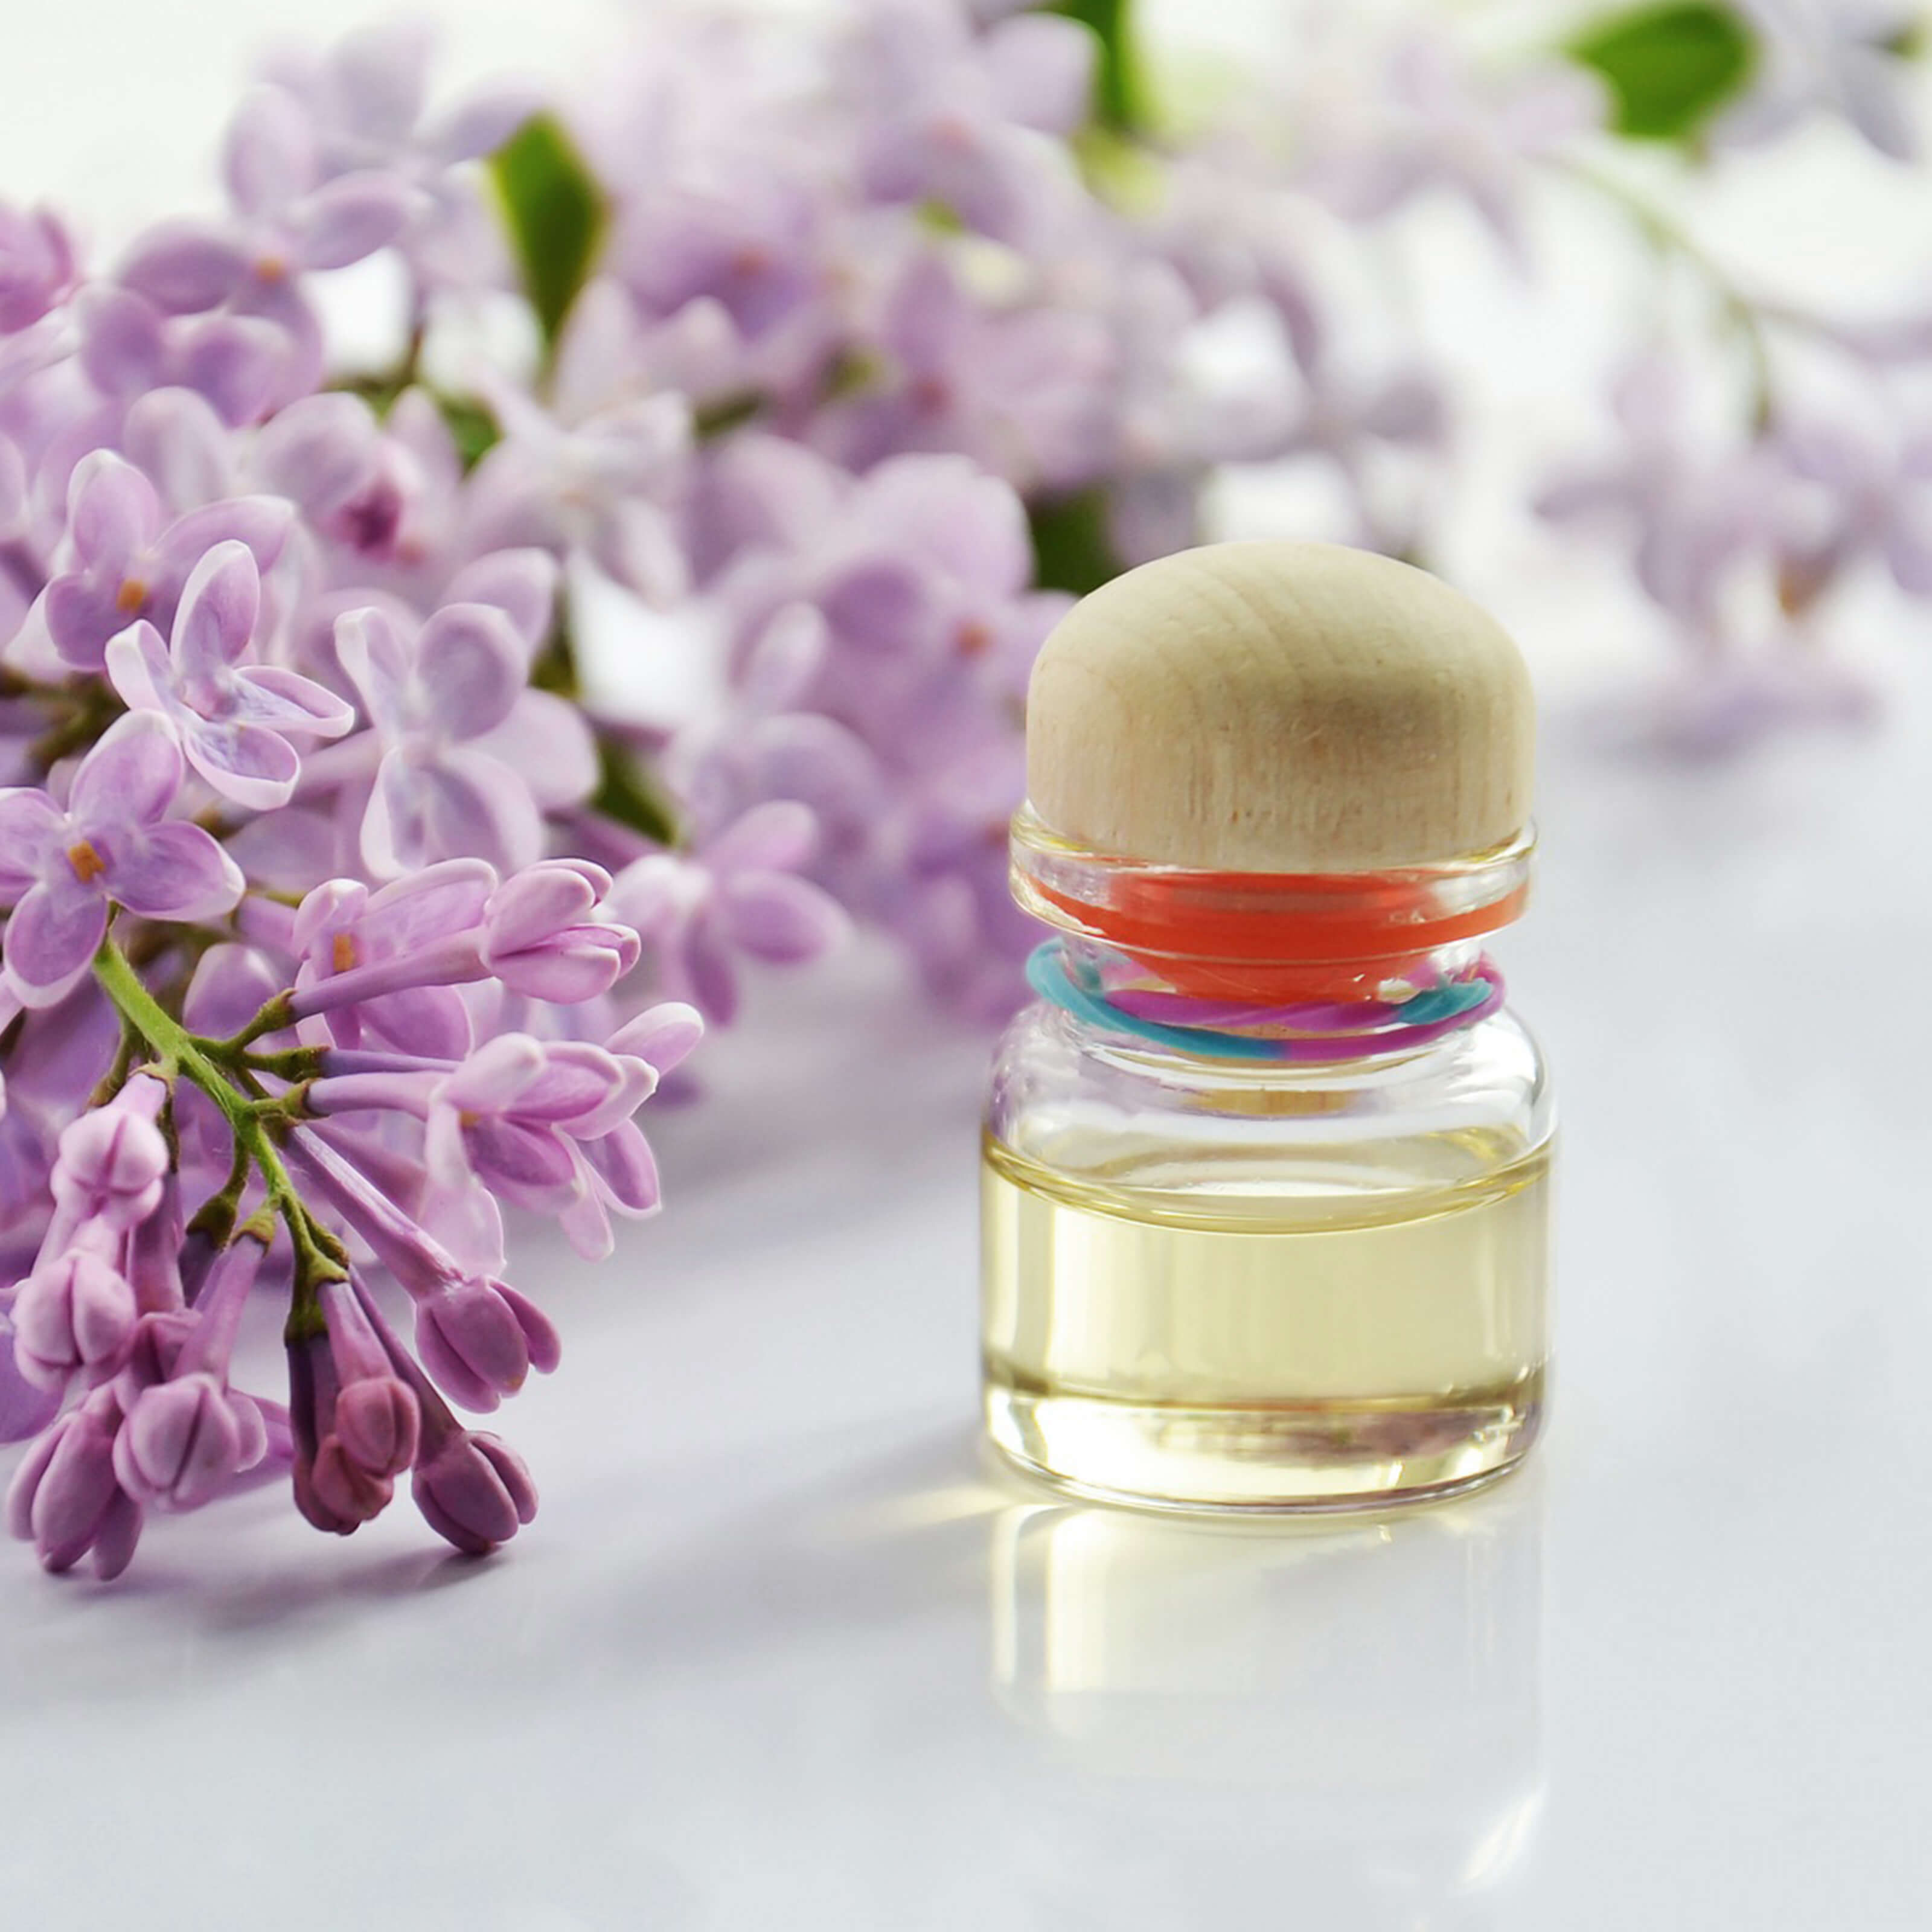 perfume bottle, flowers